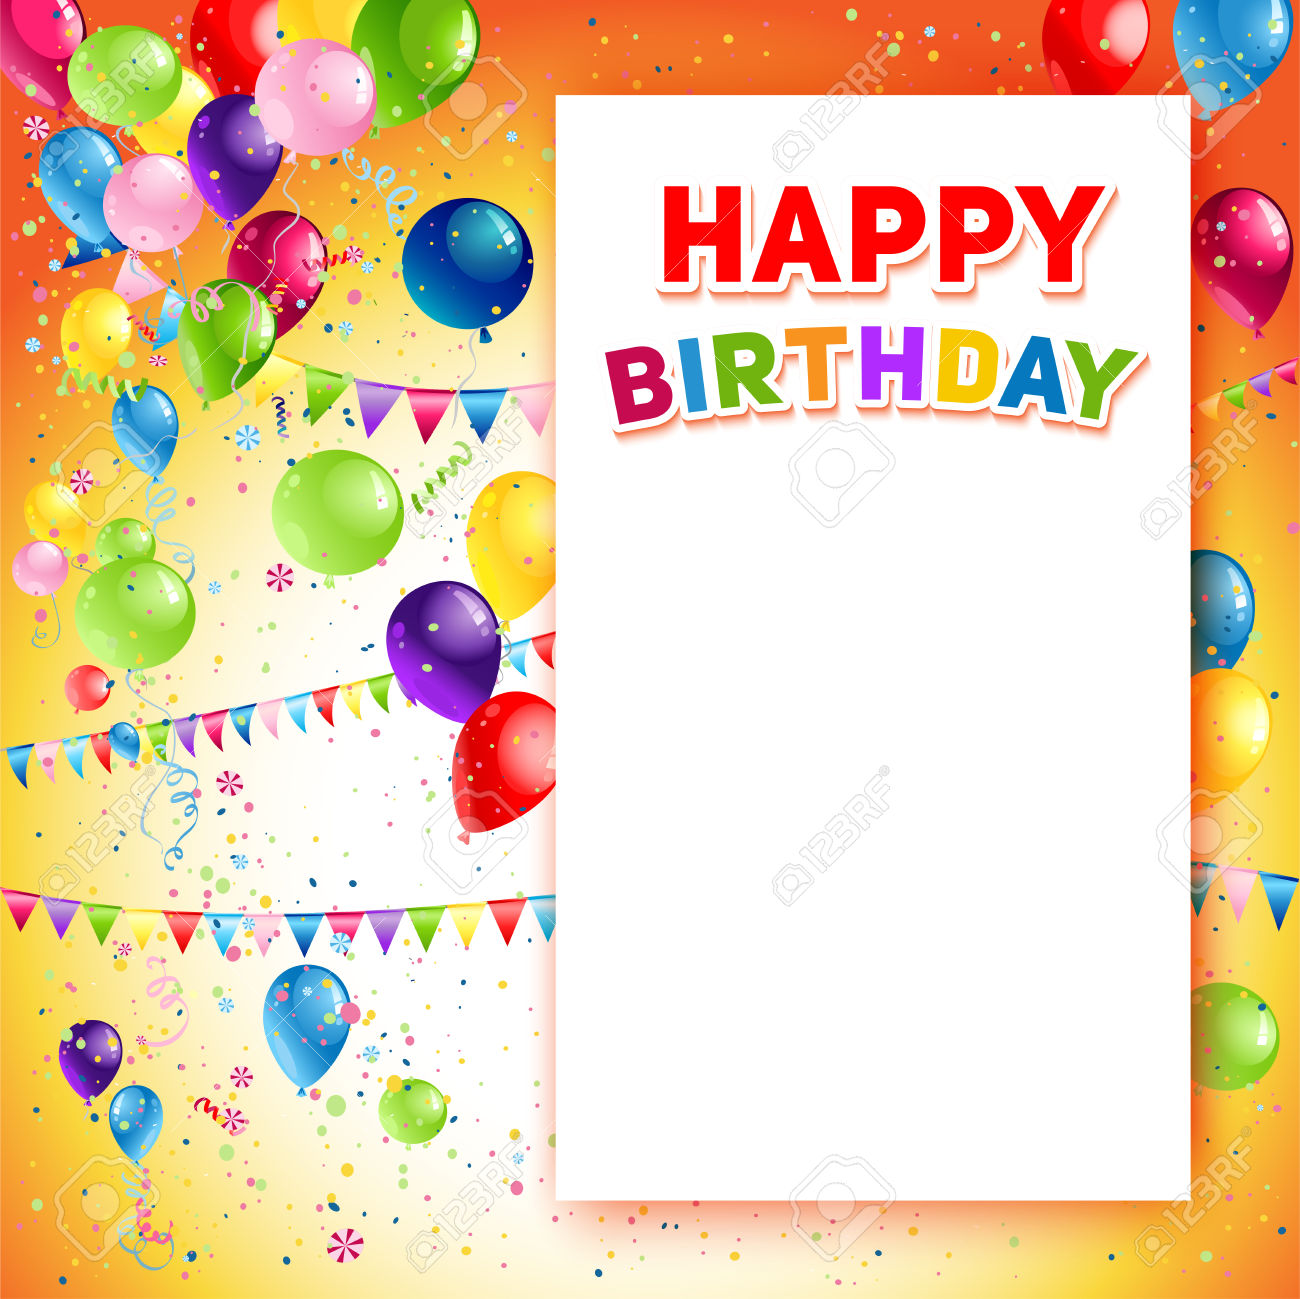 banner design birthday ; 62469211-Holiday-template-for-design-banner-ticket-leaflet-card-poster-and-so-on-Happy-birthday-background-an-Stock-Vector